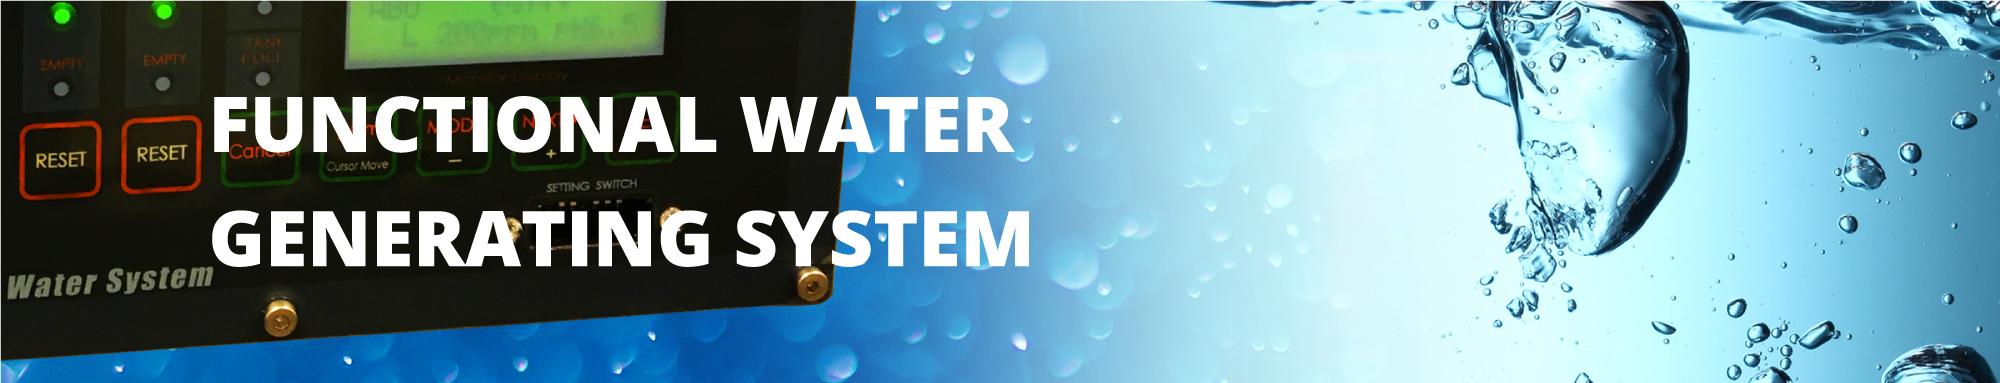 FUNCTIONAL WATER  GENERATING SYSTEM